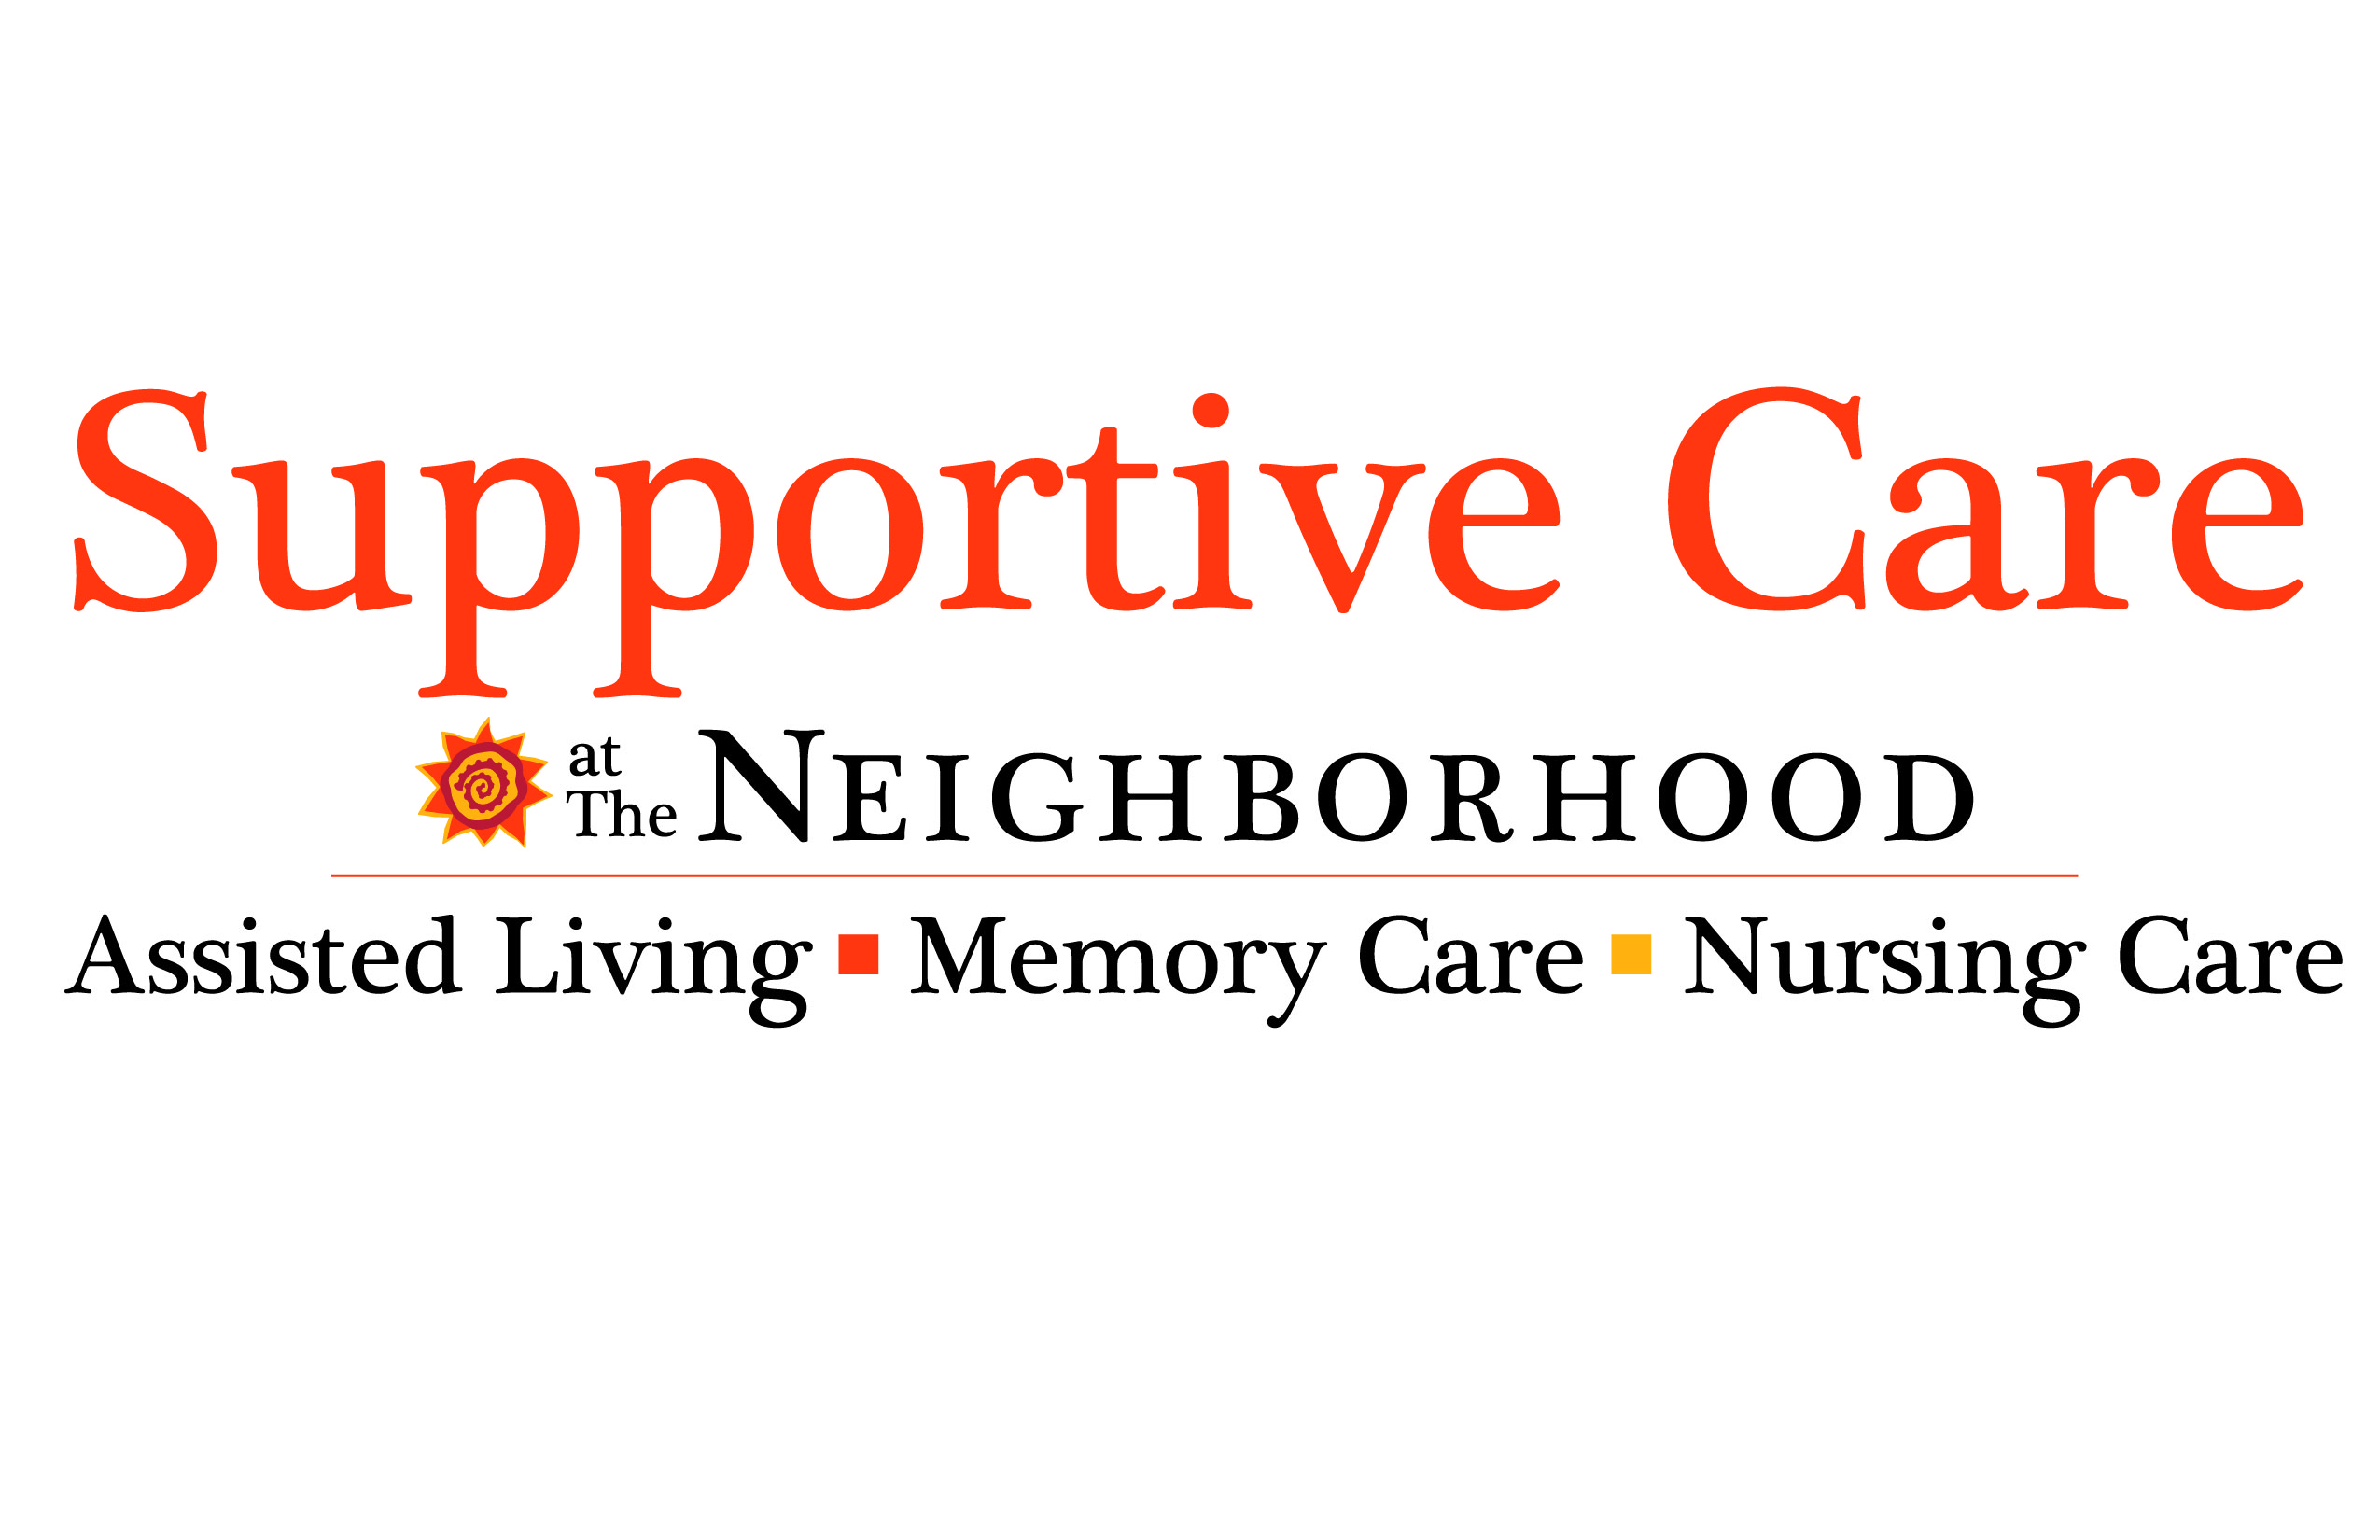 Supportive Care at The Neigborhood